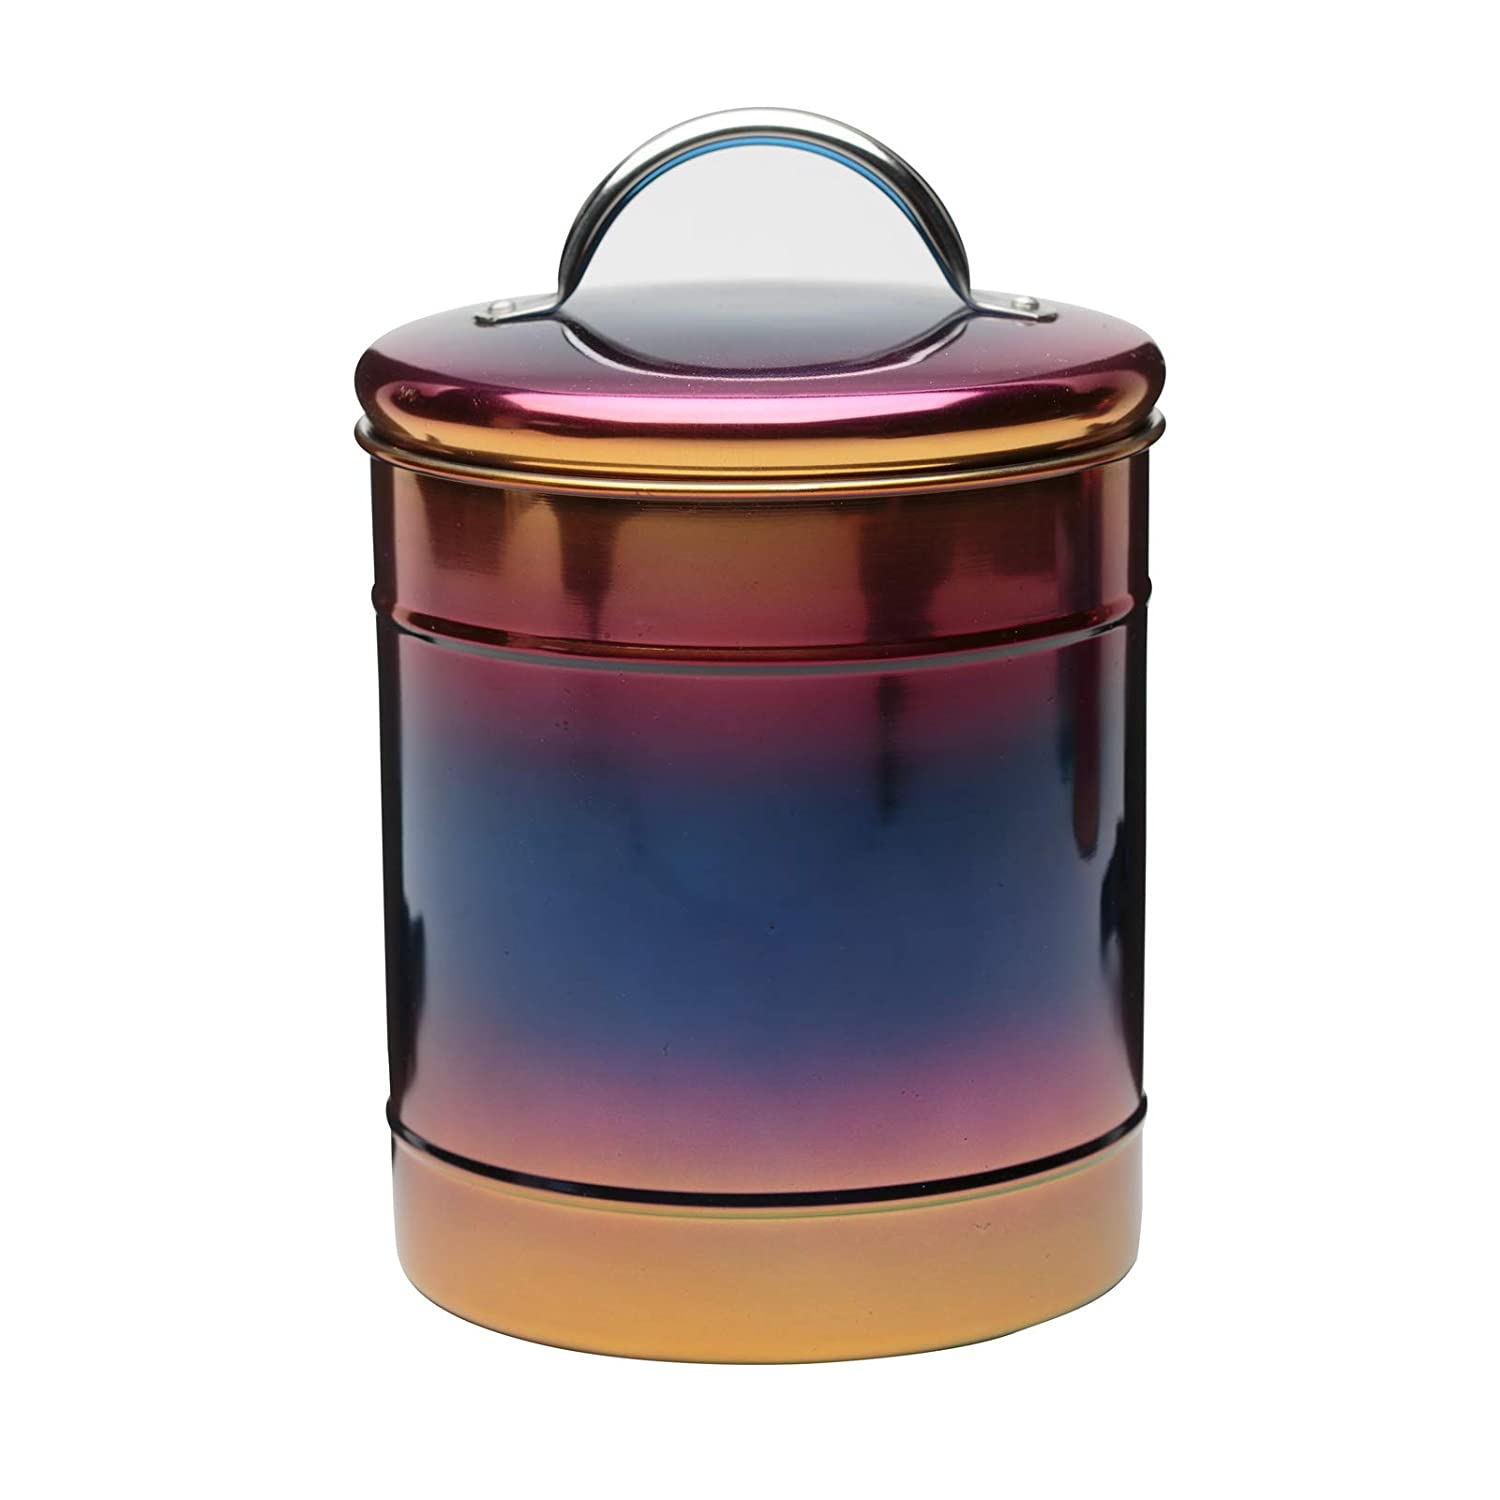 64 Ounce Capacity Amici Home Rainbow Metal Canister Large 5AN848R Decorative Metal Storage Container with Luster Finish and Gasket Lined Lid